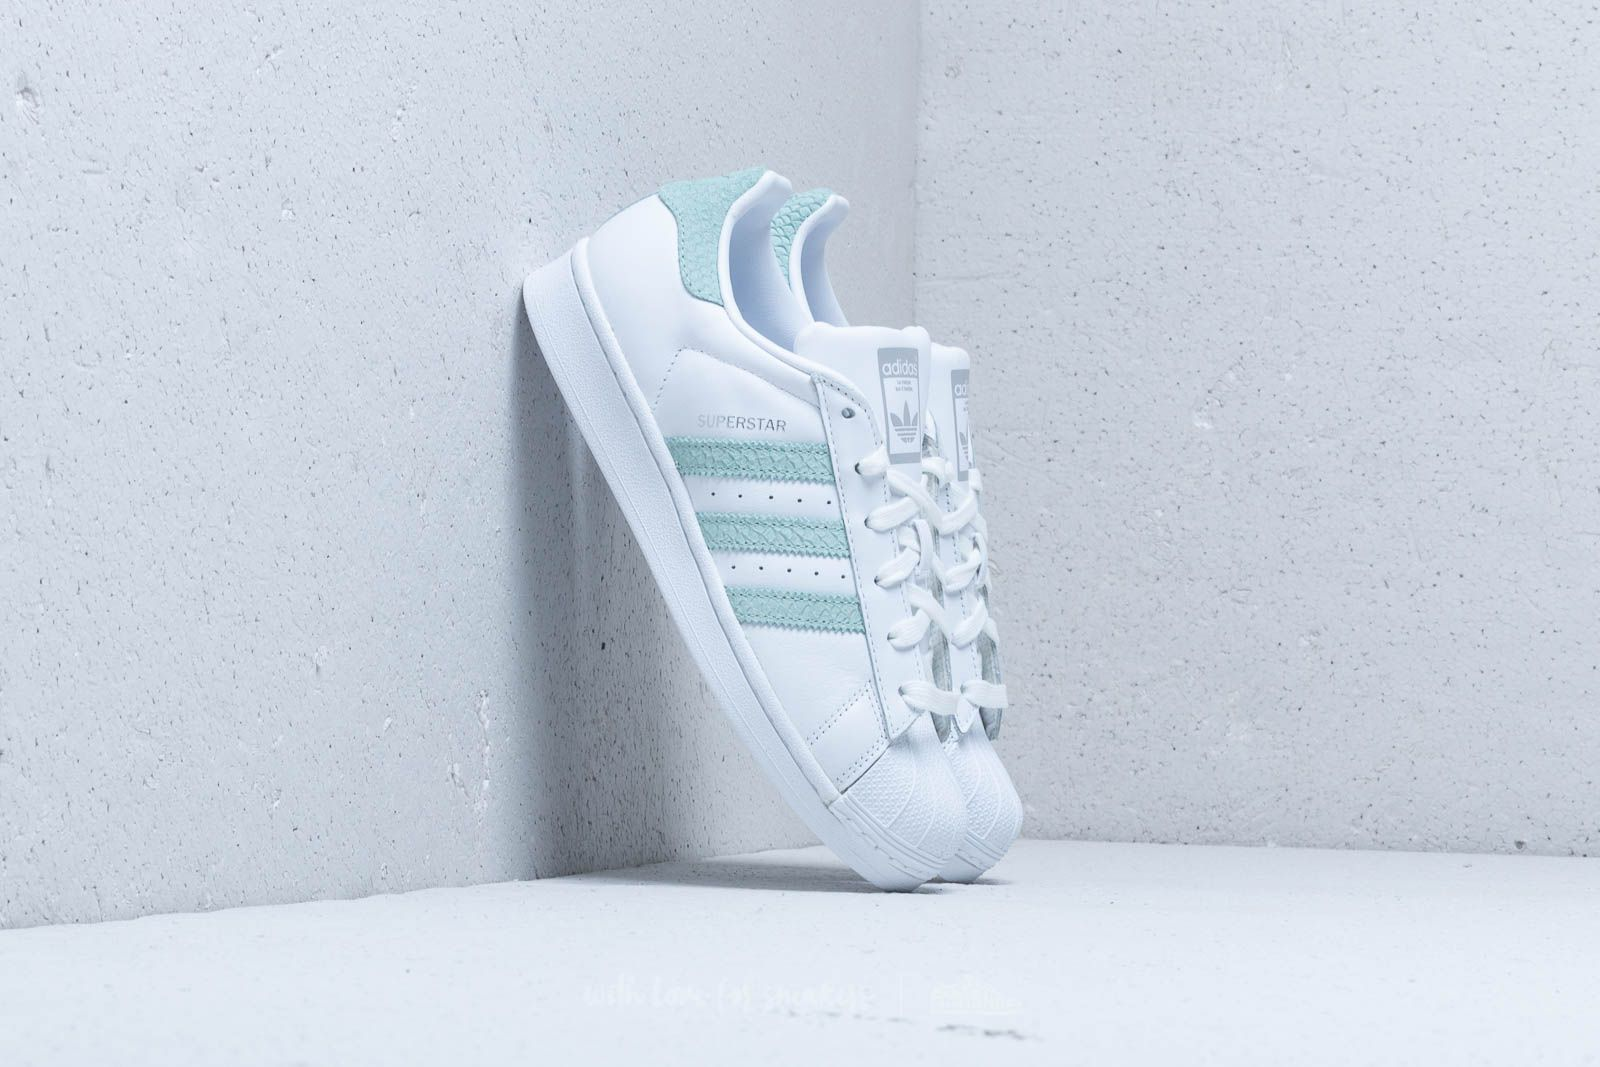 e09d0fef542772 ... adidas superstar w white white teal adidas Superstar W Ftw White  Ash  Green  ...